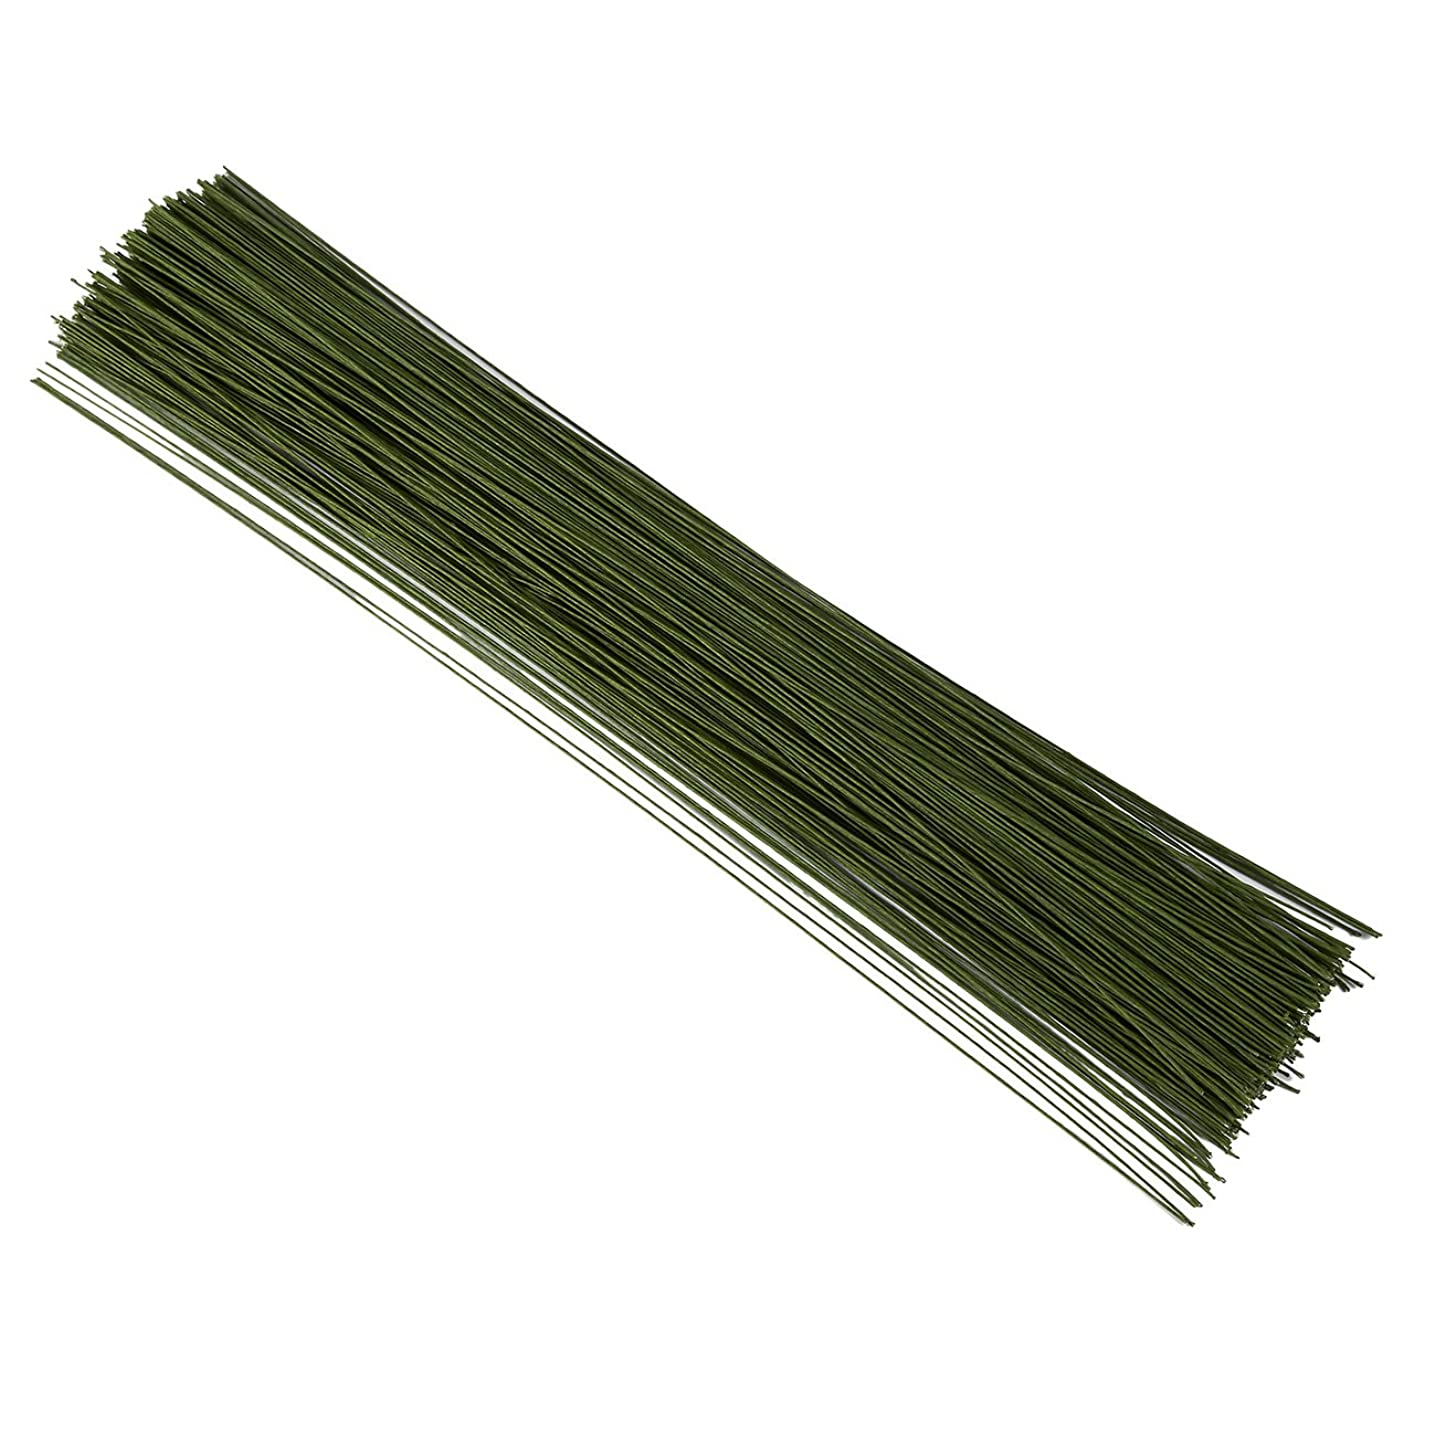 Juvale 300 Piece Wrapped 22 Gauge Floral Wire Stems for Bouquets, Flower Arrangements and DIY Crafts, Dark Green, 16 Inches